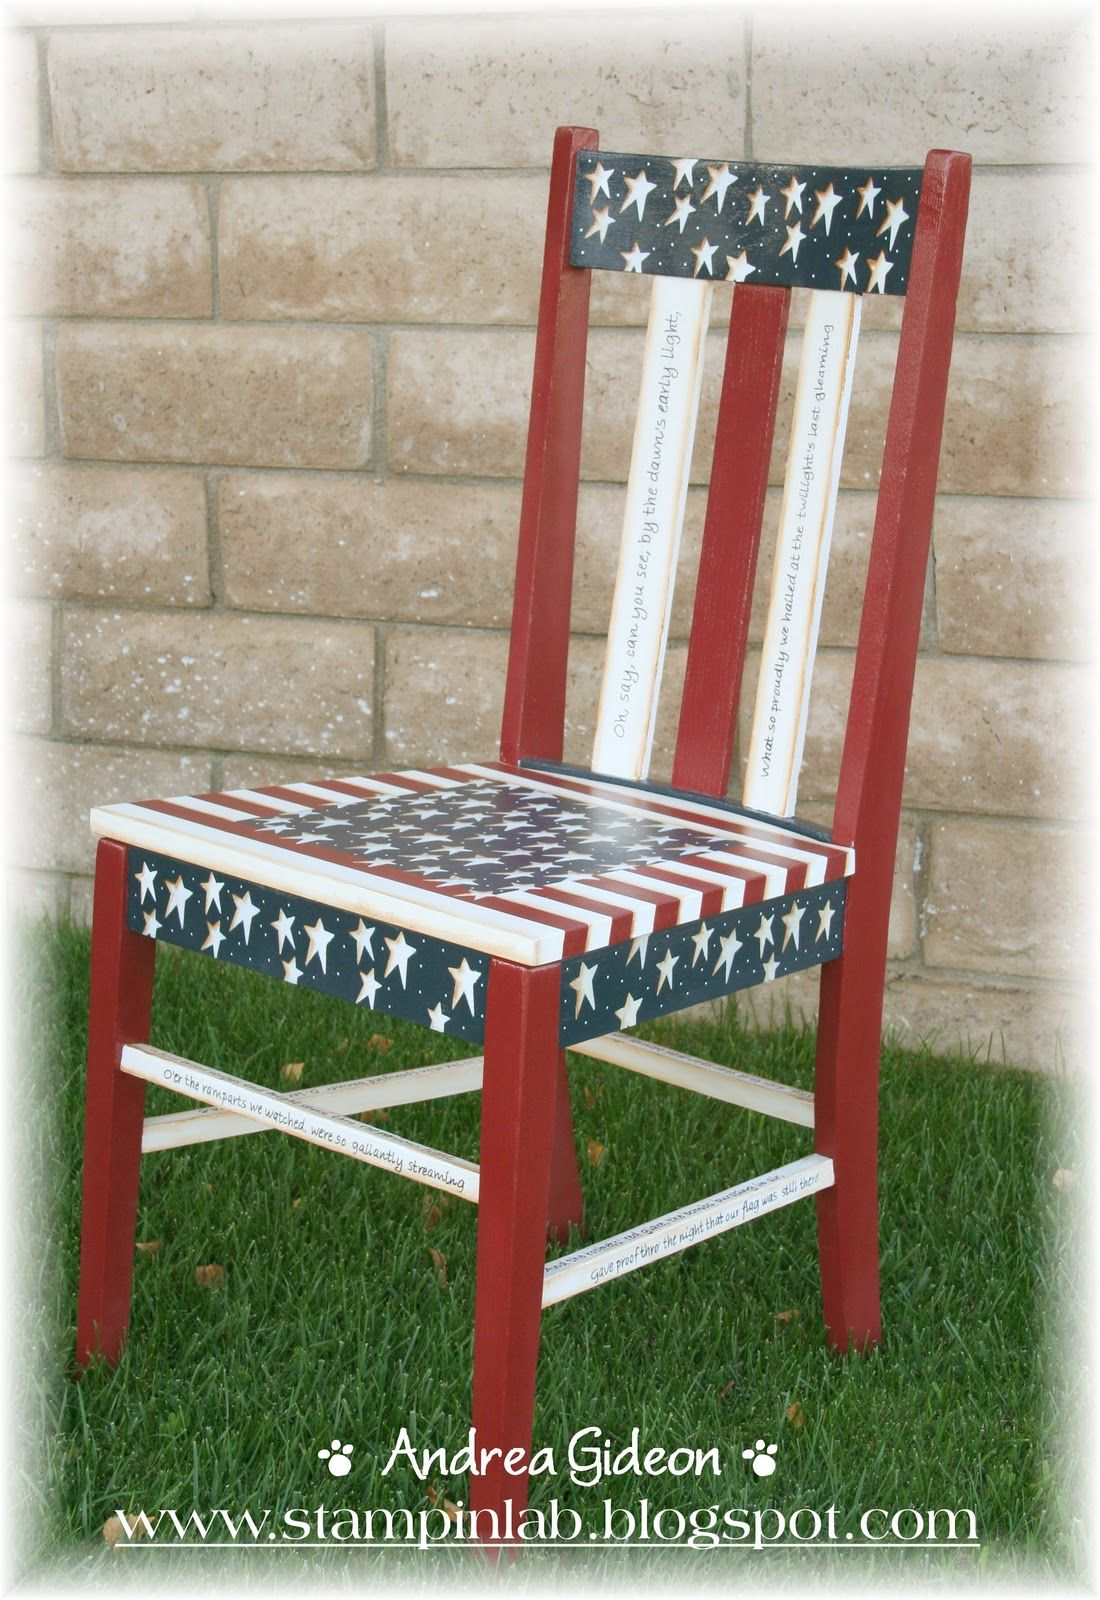 Miraculous 06 04 2016 Red White And Blue Chair Stampinlab My Hand Short Links Chair Design For Home Short Linksinfo